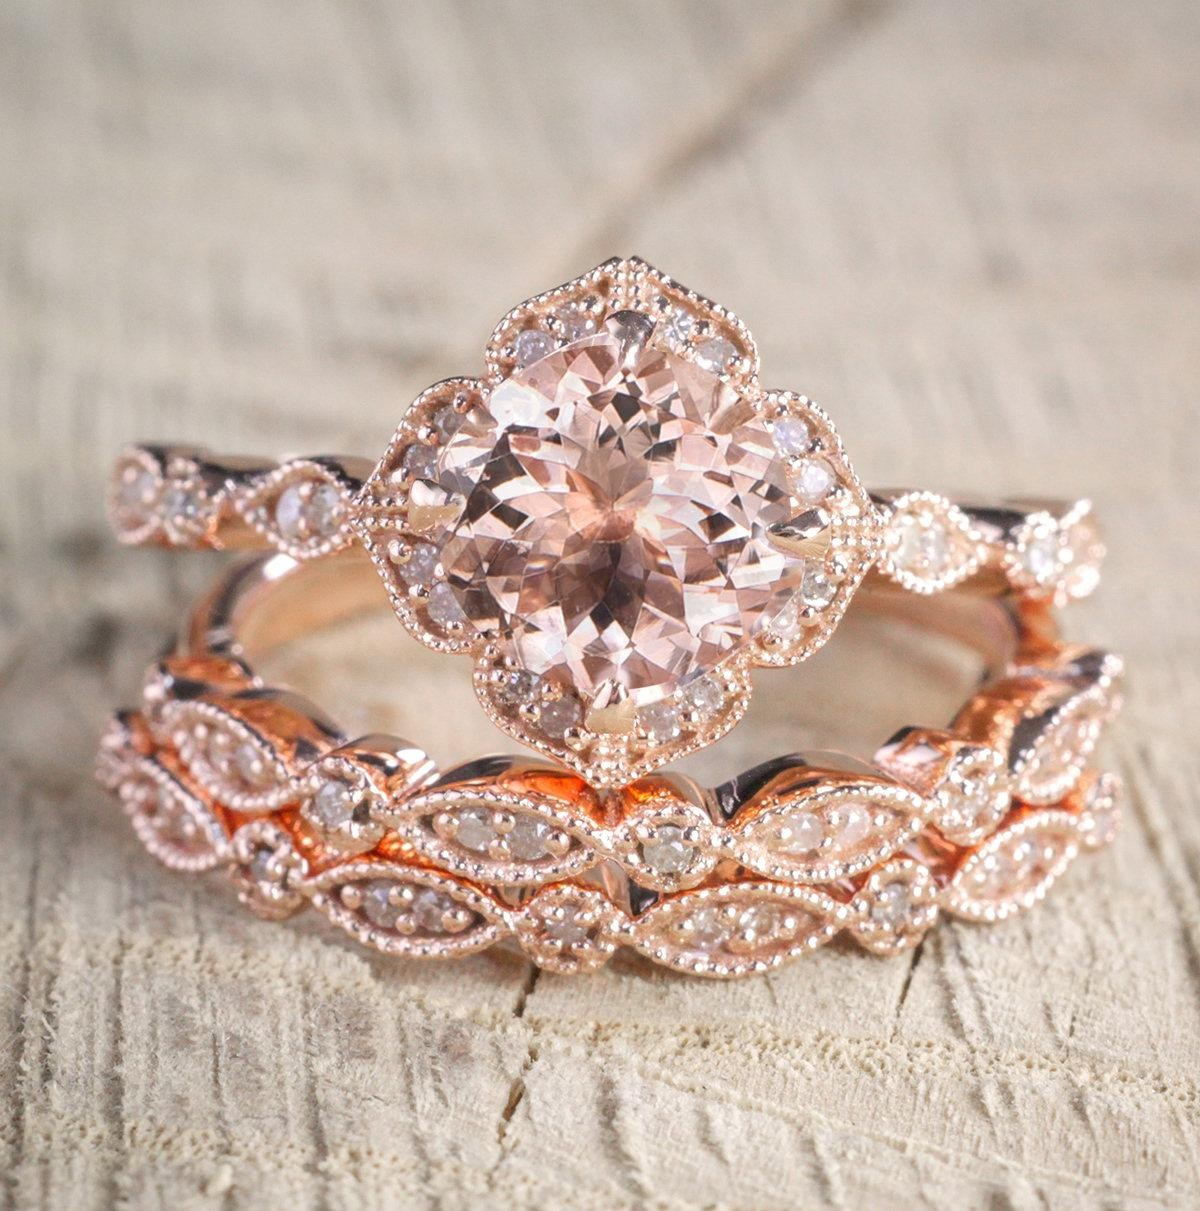 2 carat Morganite and Diamond Trio Wedding Bridal Ring Set in 10k Rose Gold with One Engagement Ring and 2 Wedding Bands by JeenJewels